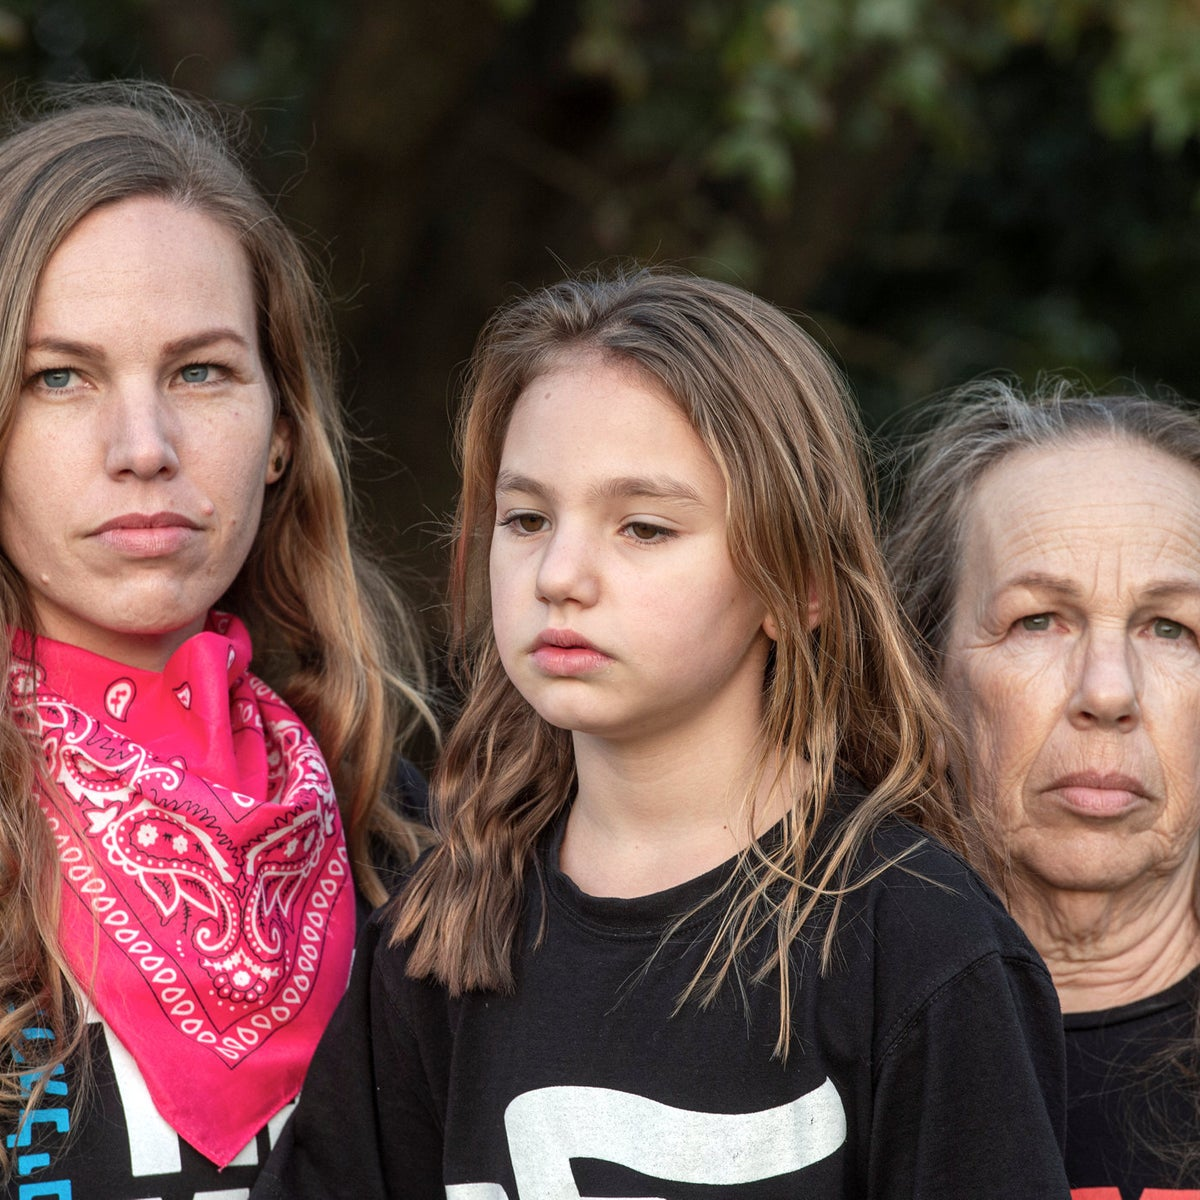 Yael Shmueli, left, her daughter Ofer and mother Nira. 'It made me feel that it's important to continue what we're doing.'